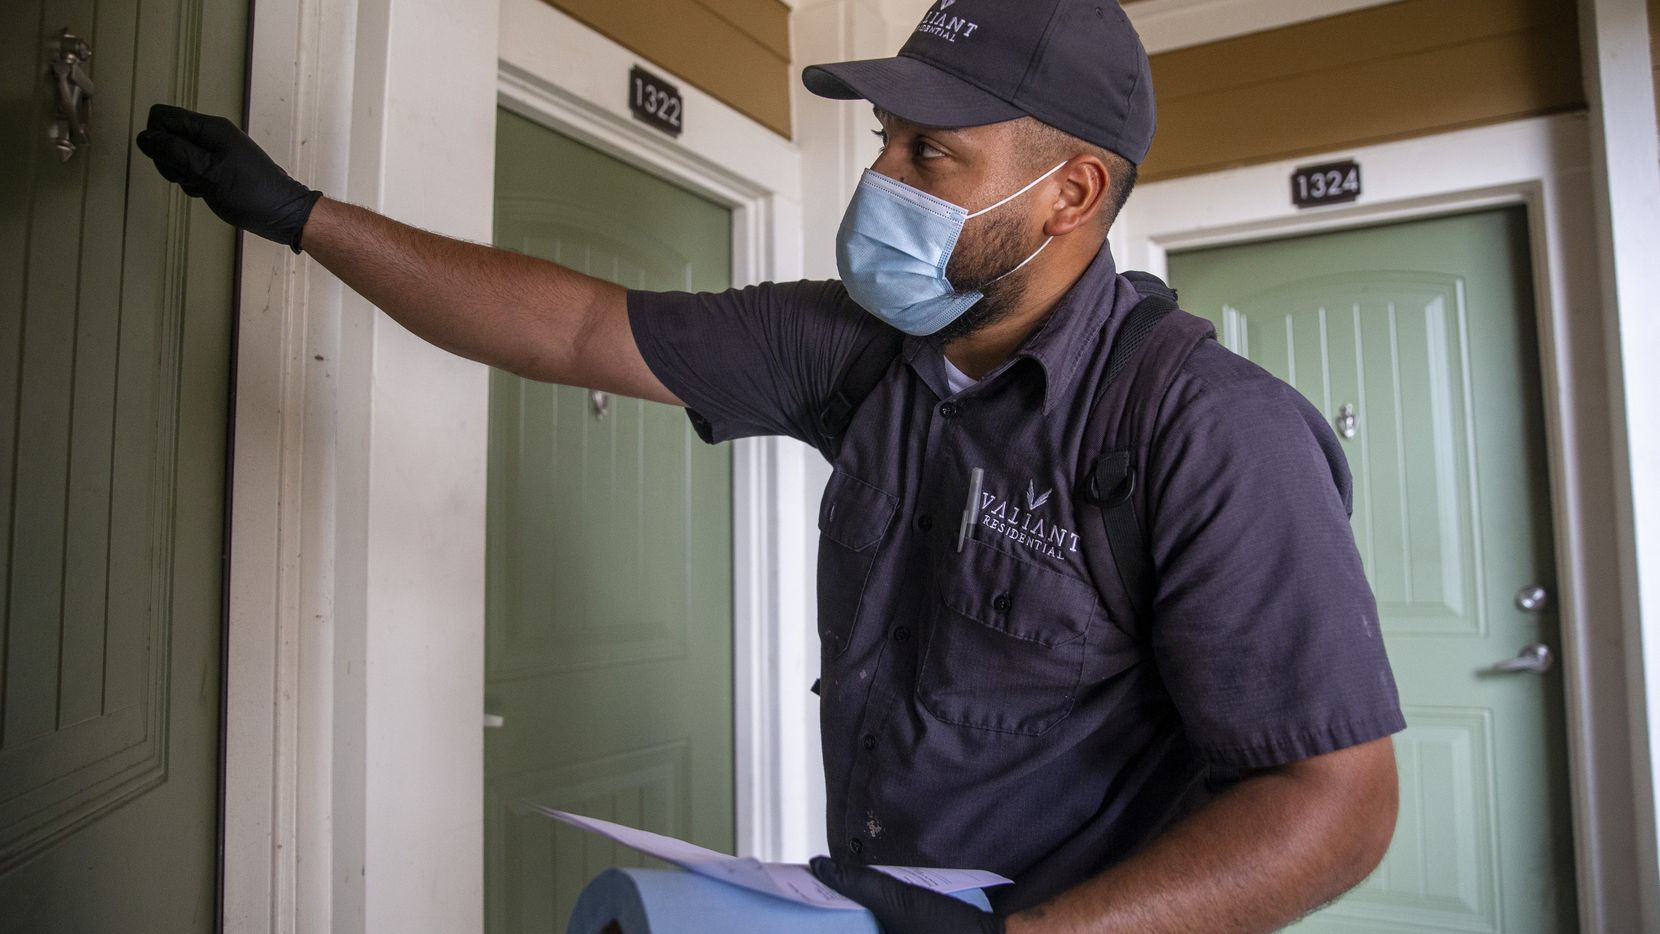 Valiant Residential assistant maintenance technician Rafael Muñoz does some work at the Lakewood Flats Apartments complex in Dallas.